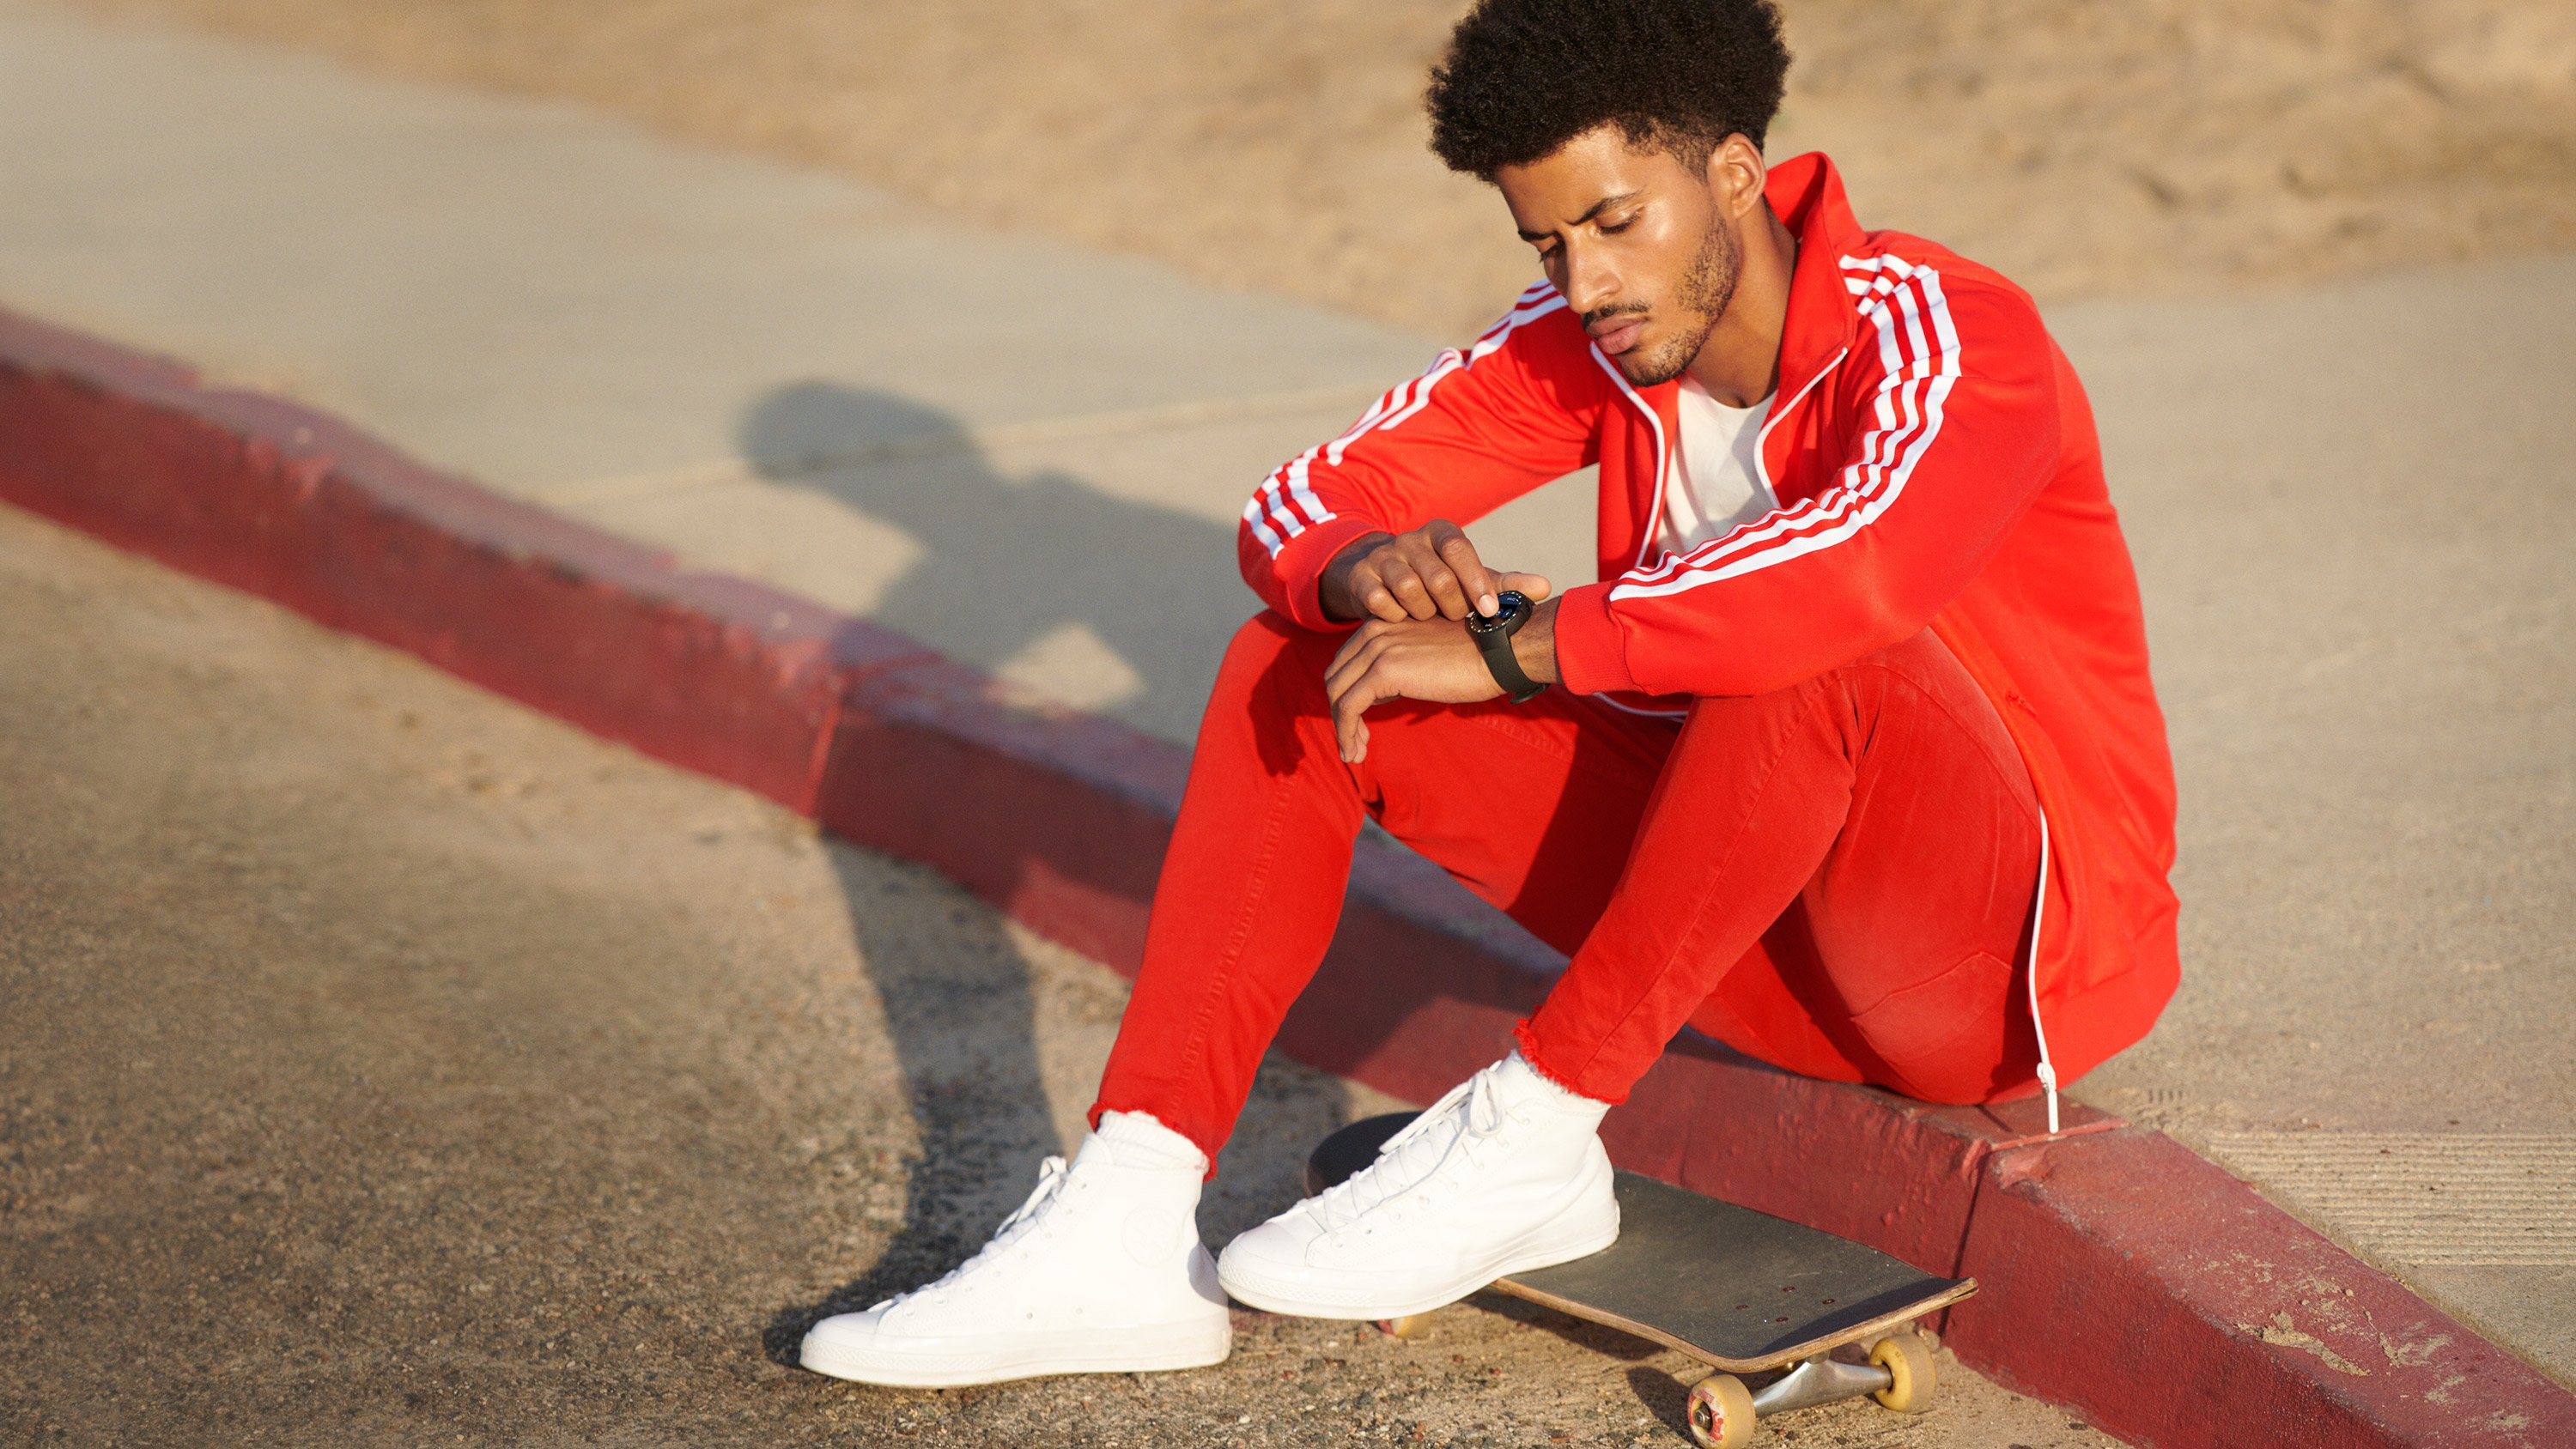 Google Wear OS lifestyle, man wearing red jumpsuit and white sneakers with matching Google Wear OS watch. Art Direction by RoAndCo